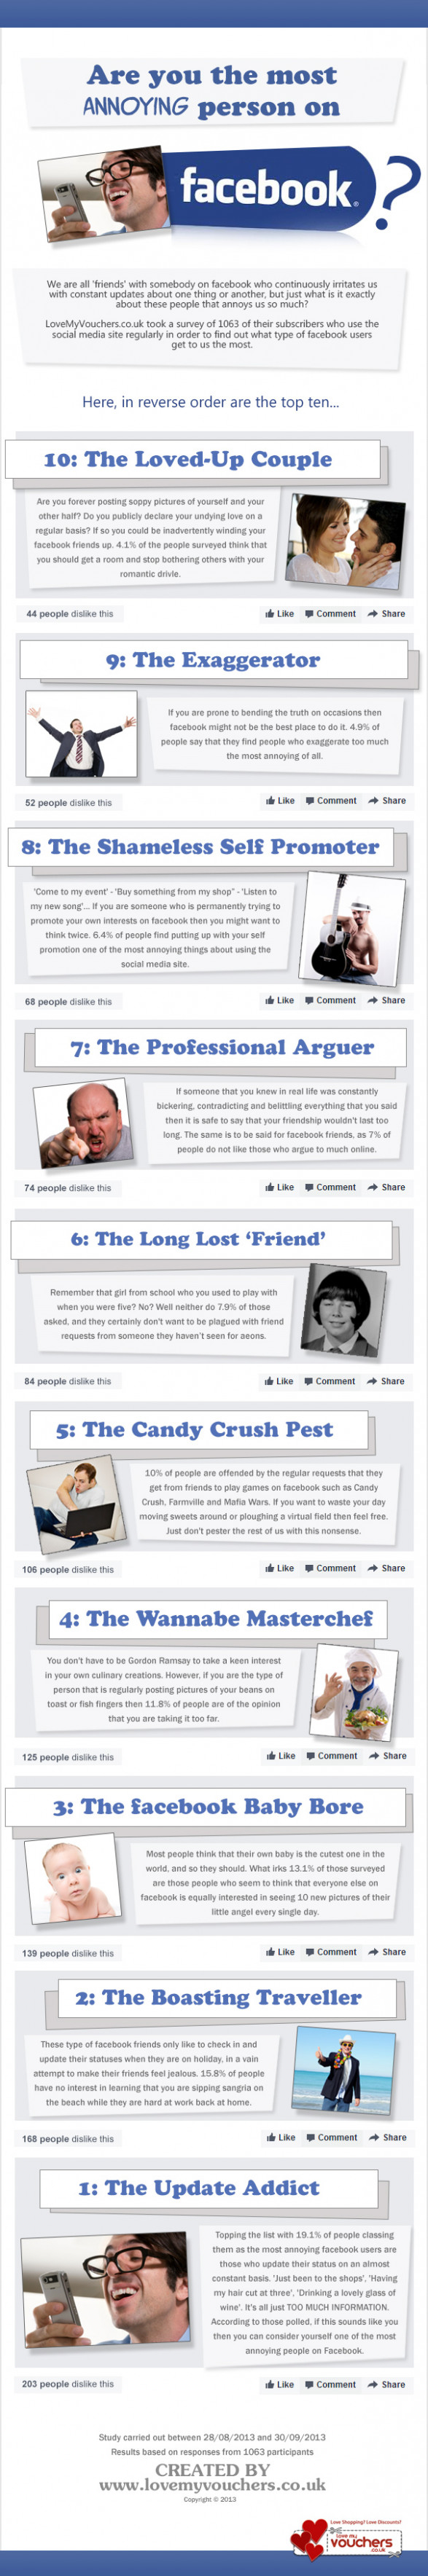 Are You The Most Annoying Person On Facebook?